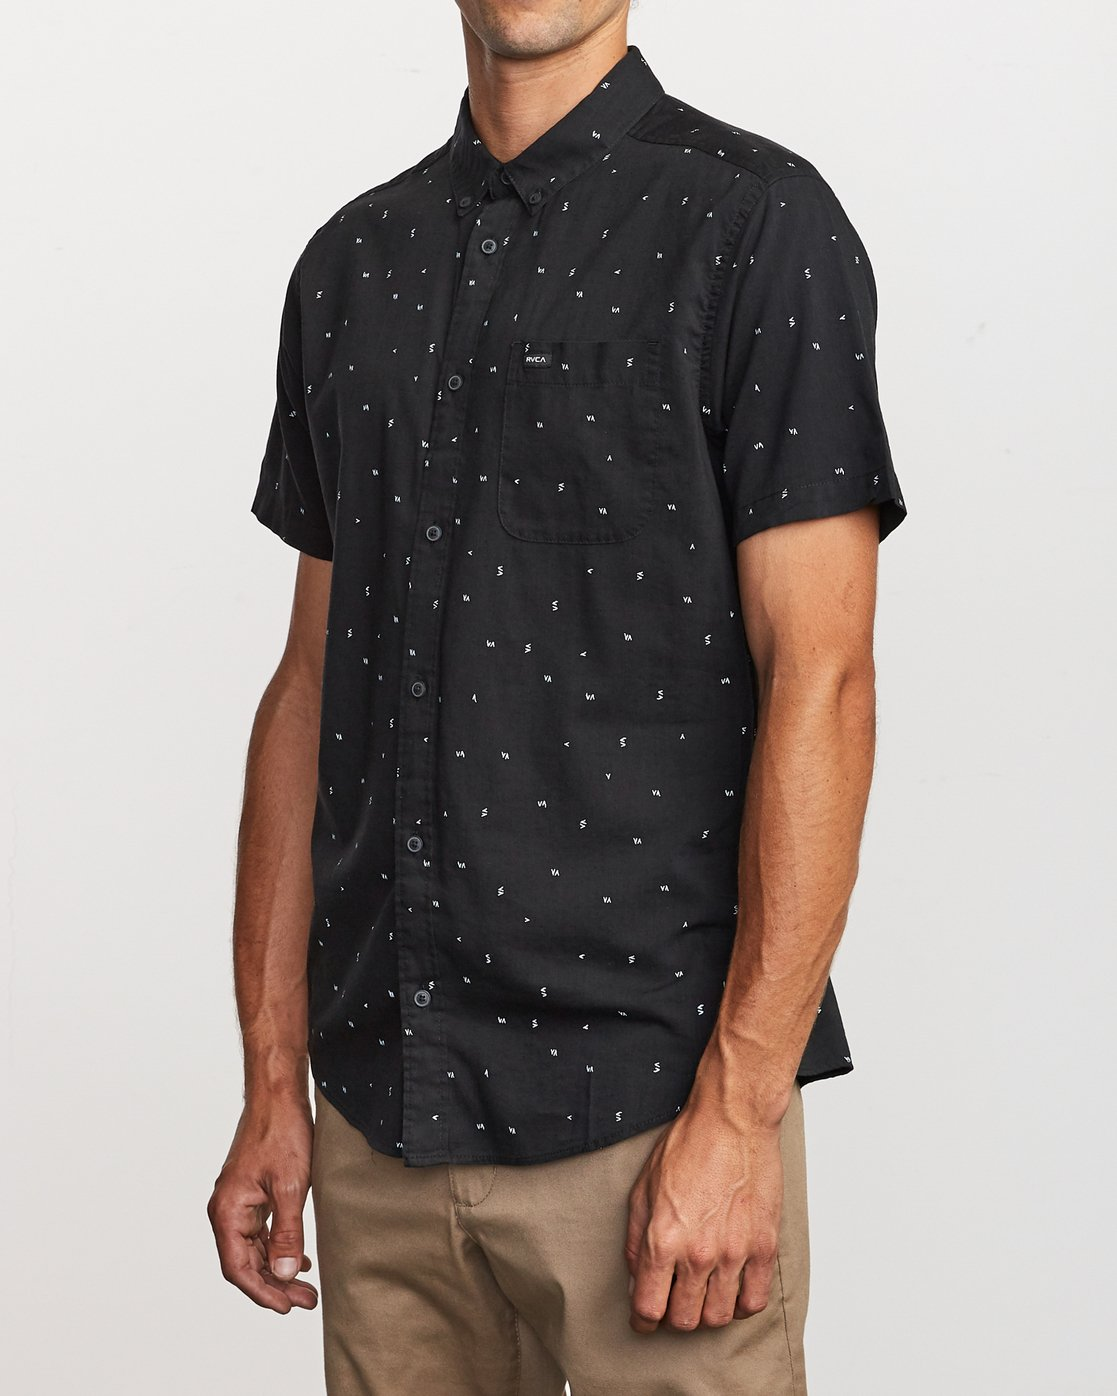 2 VA Little Buds Button-Up Shirt Black M514VRVL RVCA